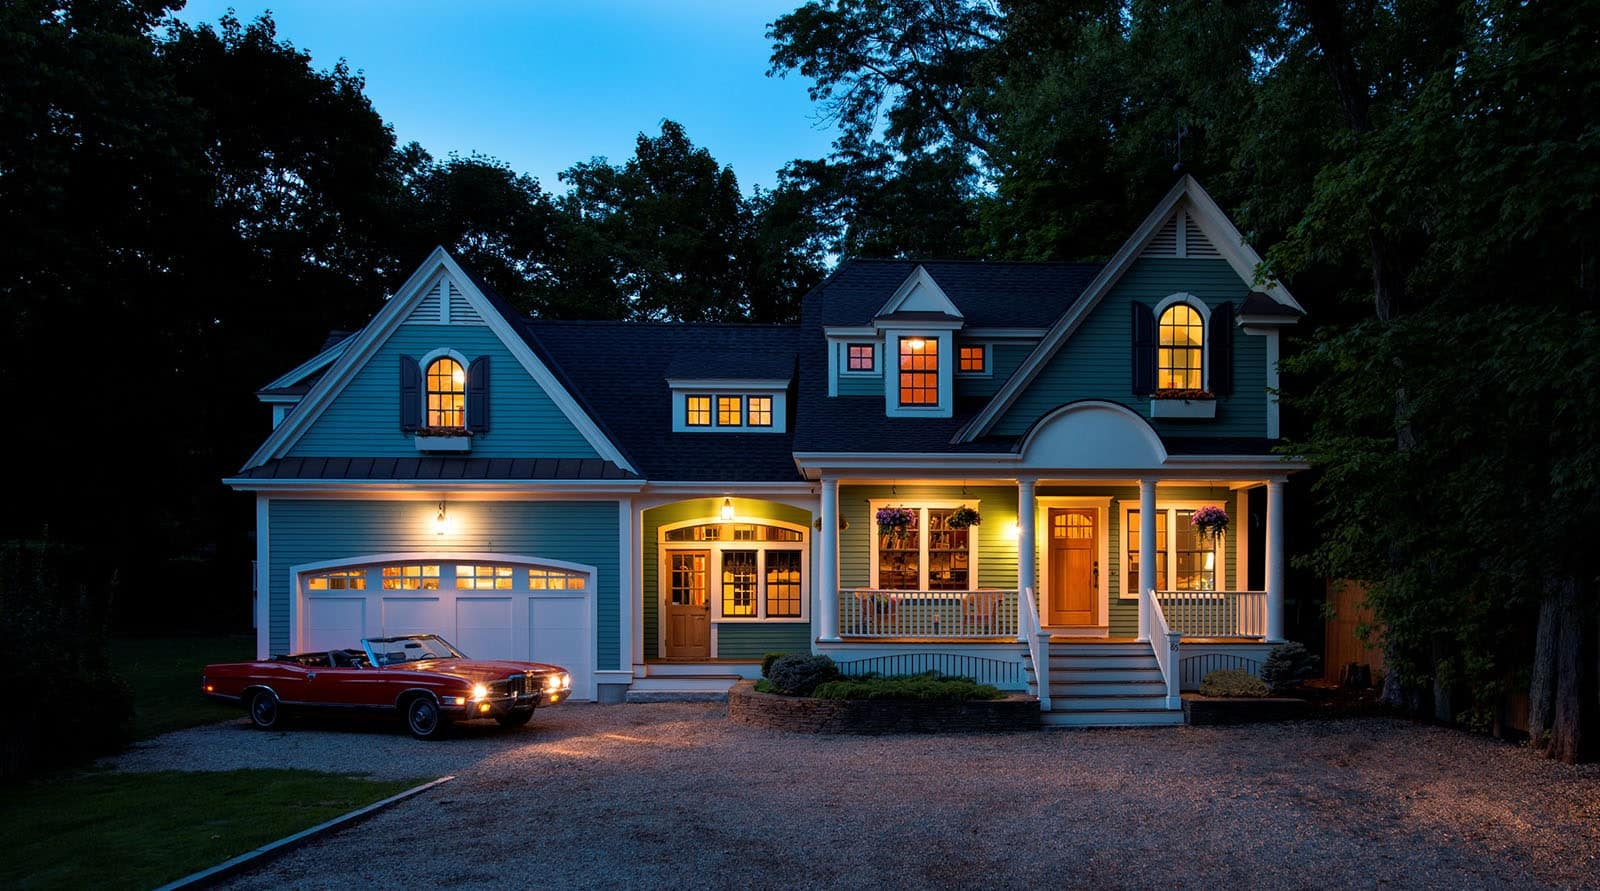 Eclectic Elegance Ipswich MA Exterior